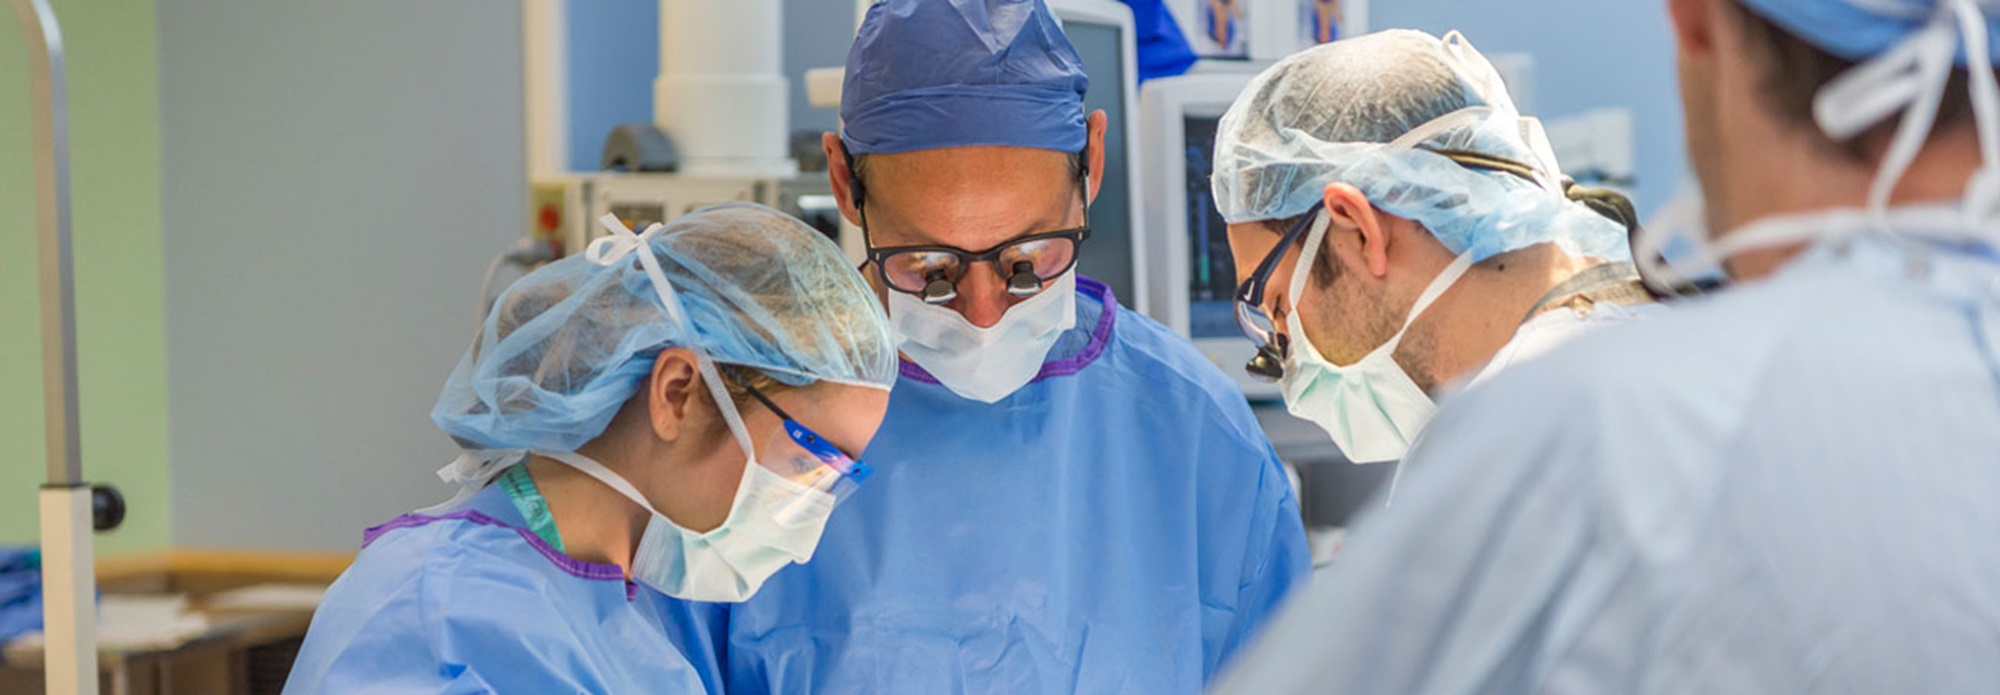 Dr. Duncan Wilcox, Surgeon-in-Chief, performing surgery with other healthcare providers in the operating room